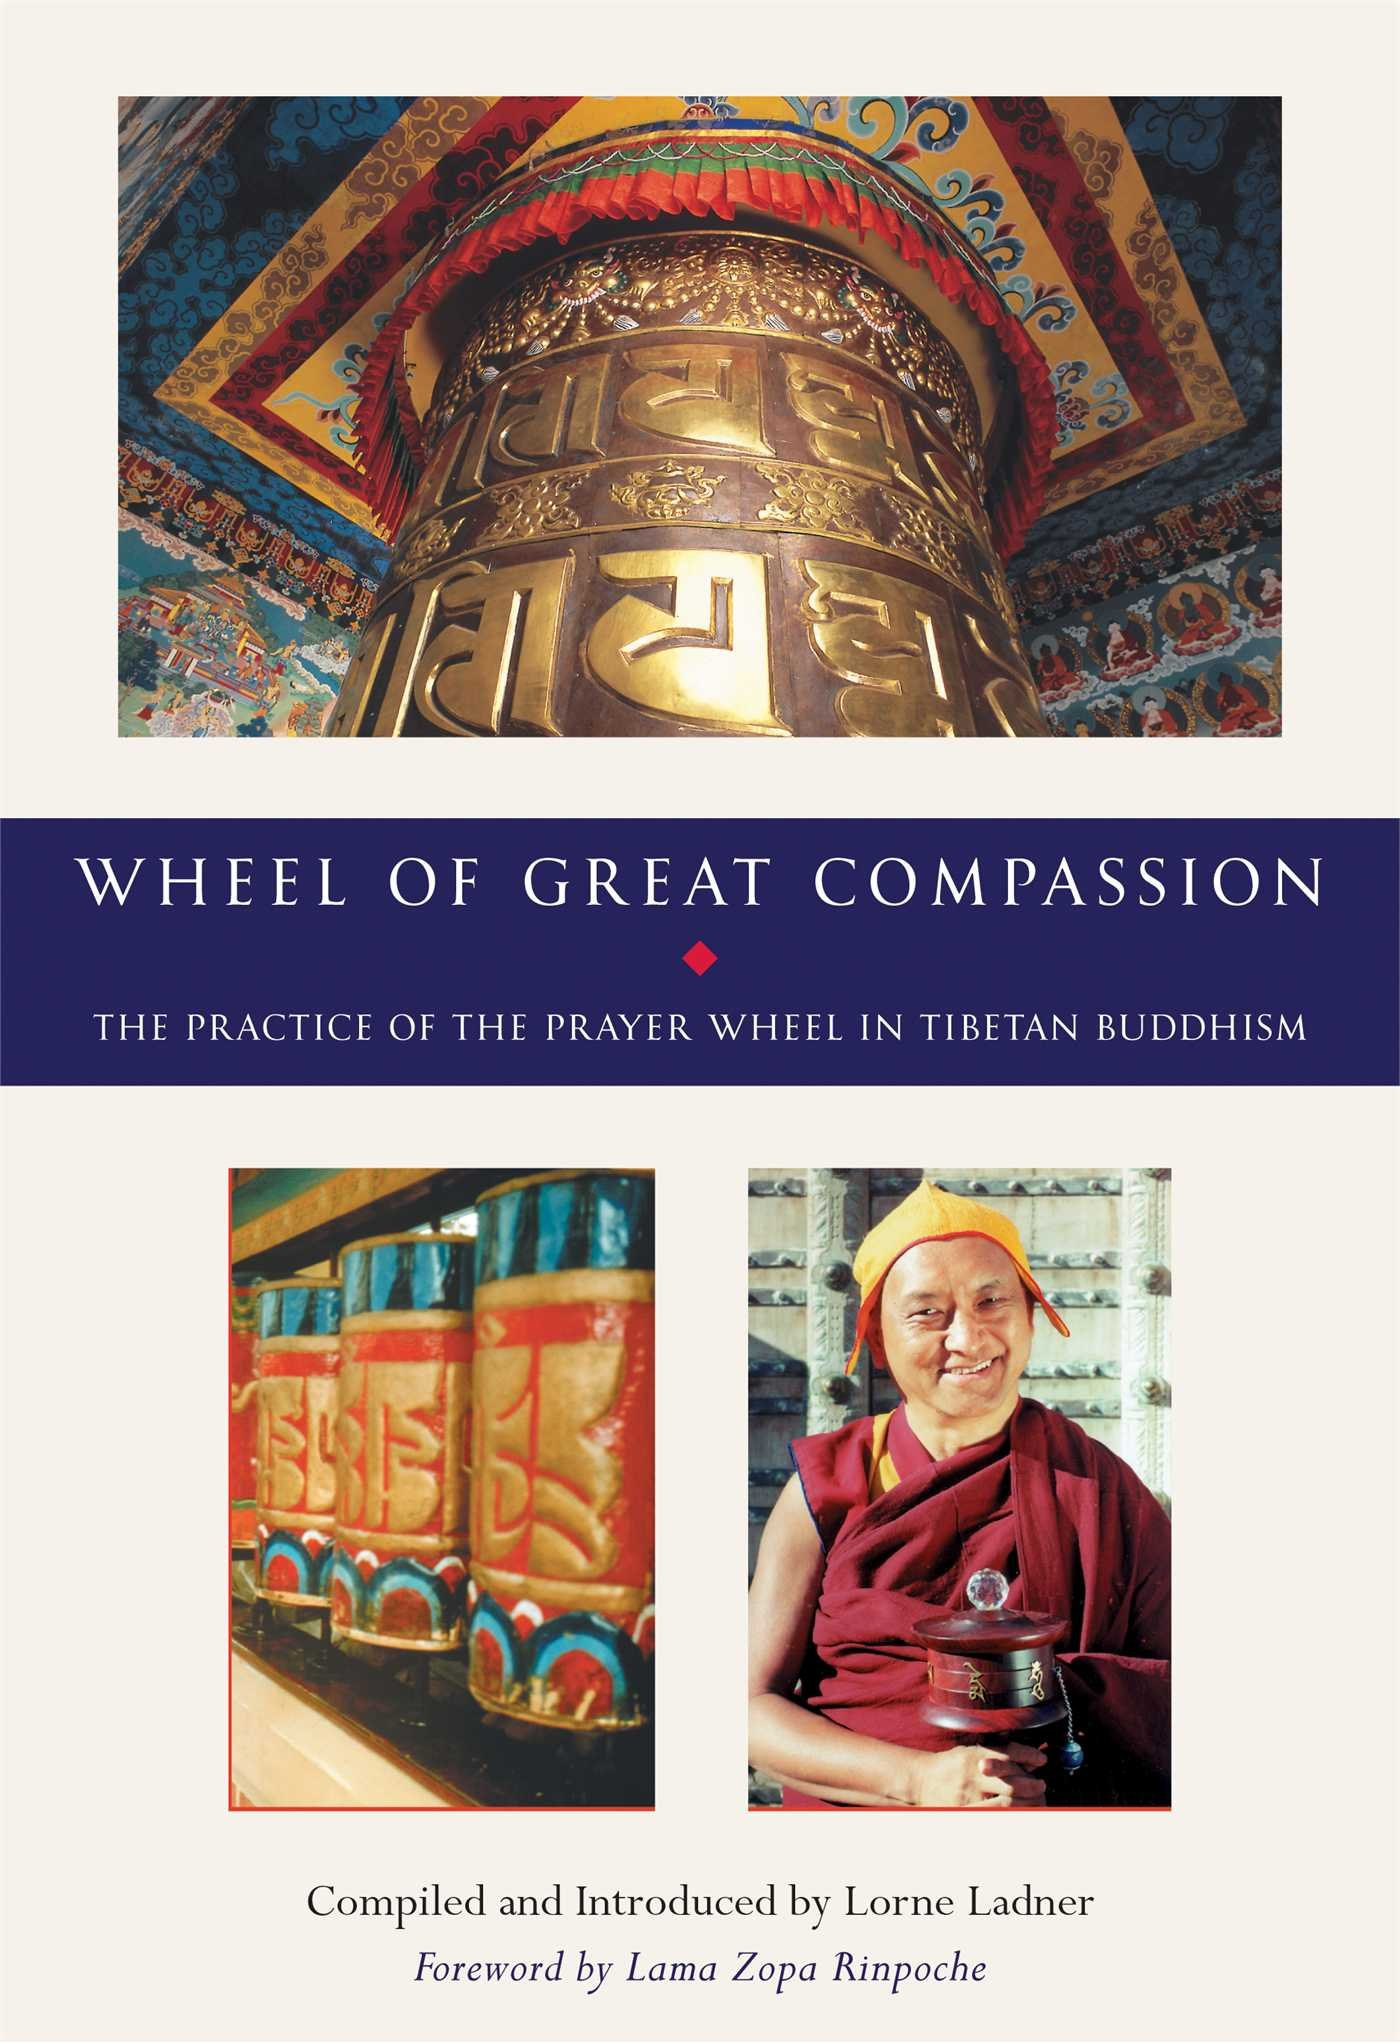 Ladner Wheel of Great Compassion cover art